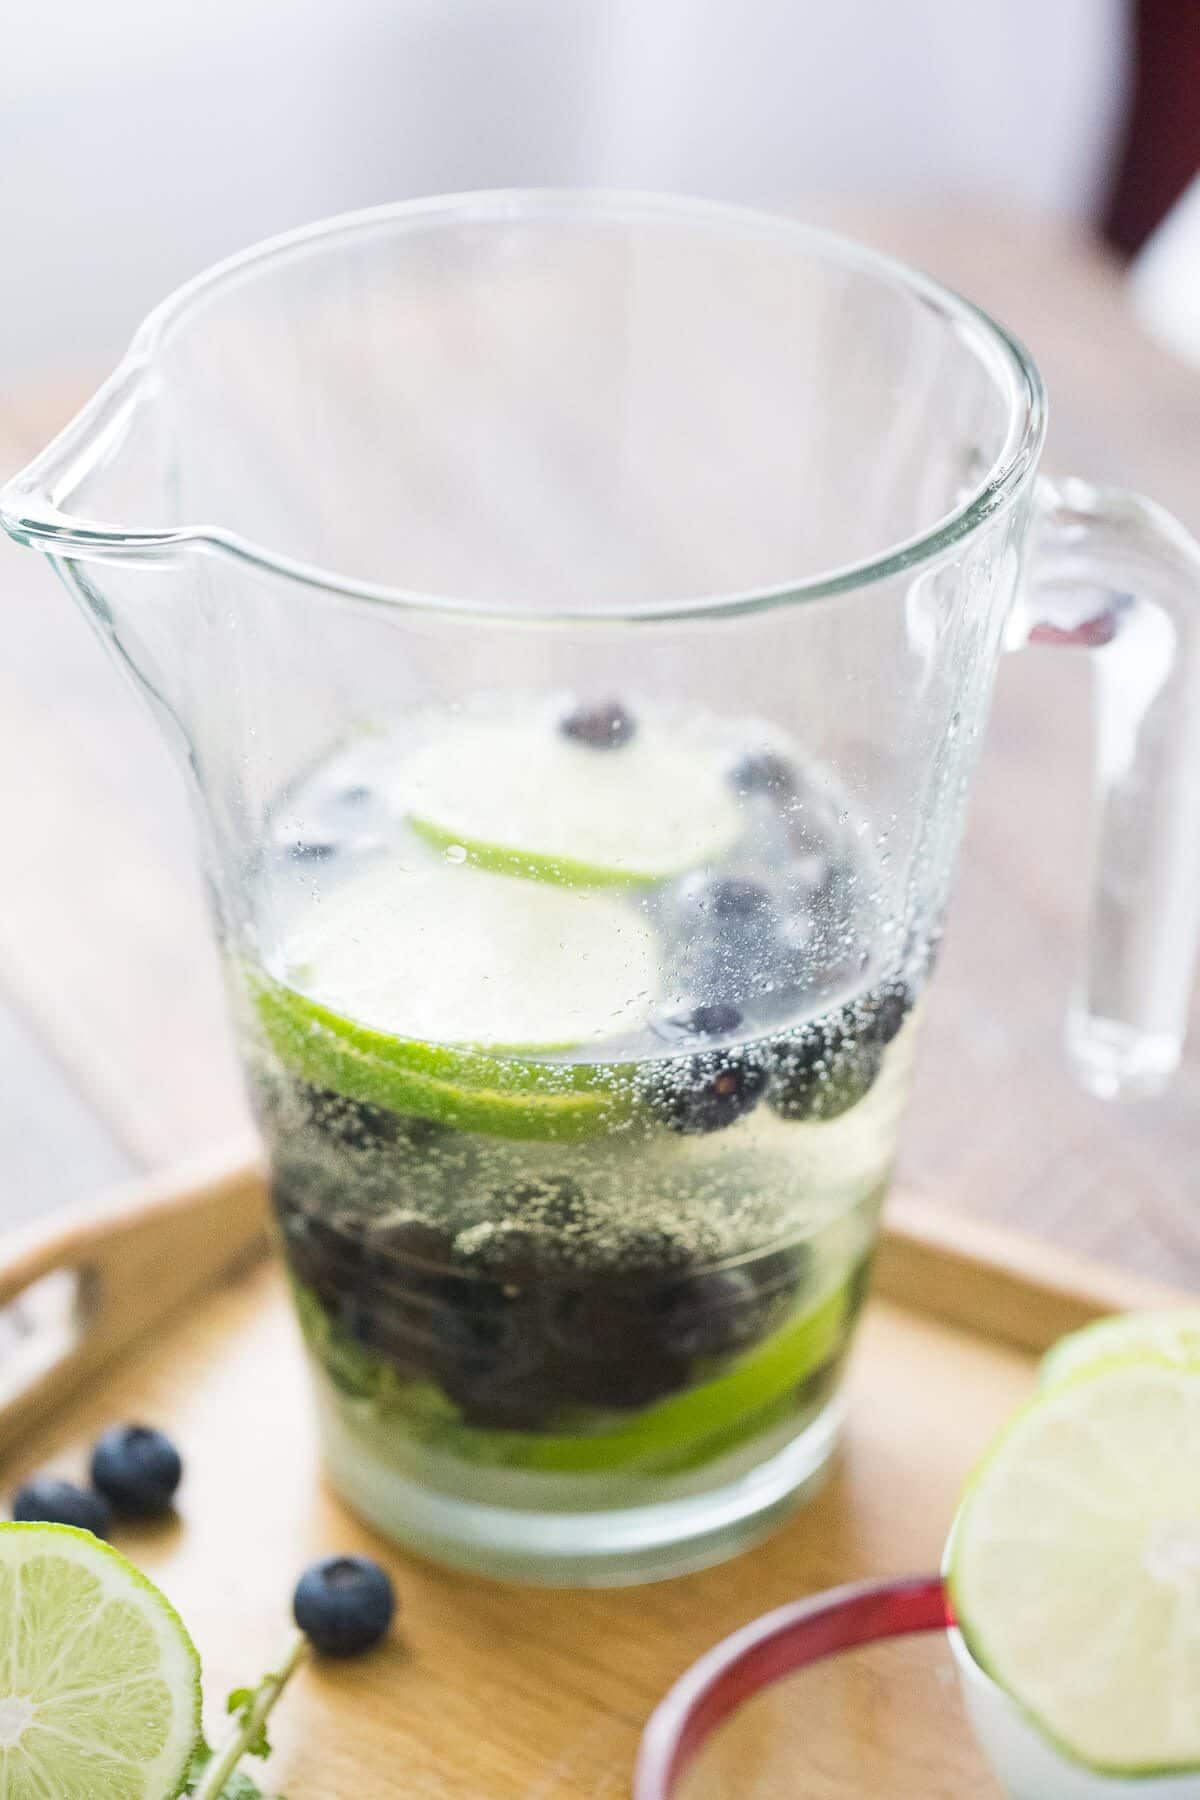 Homemade Blueberry Mojito in a pitcher with blueberries and sliced limes.